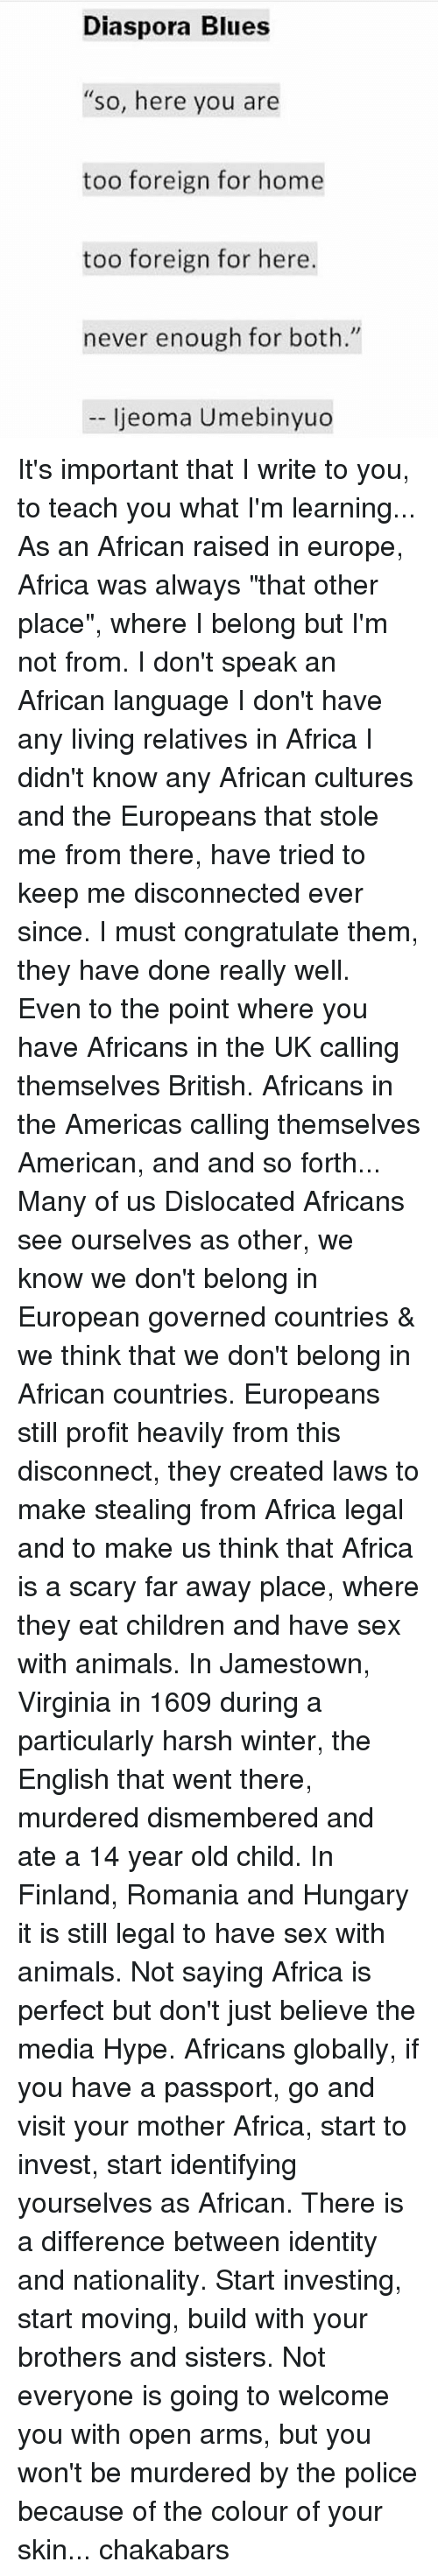 "diaspora: Diaspora Blues  ""So, here you are  too foreign for home  too foreign for here.  never enough for both.""  ljeoma Umebinyuo It's important that I write to you, to teach you what I'm learning... As an African raised in europe, Africa was always ""that other place"", where I belong but I'm not from. I don't speak an African language I don't have any living relatives in Africa I didn't know any African cultures and the Europeans that stole me from there, have tried to keep me disconnected ever since. I must congratulate them, they have done really well. Even to the point where you have Africans in the UK calling themselves British. Africans in the Americas calling themselves American, and and so forth... Many of us Dislocated Africans see ourselves as other, we know we don't belong in European governed countries & we think that we don't belong in African countries. Europeans still profit heavily from this disconnect, they created laws to make stealing from Africa legal and to make us think that Africa is a scary far away place, where they eat children and have sex with animals. In Jamestown, Virginia in 1609 during a particularly harsh winter, the English that went there, murdered dismembered and ate a 14 year old child. In Finland, Romania and Hungary it is still legal to have sex with animals. Not saying Africa is perfect but don't just believe the media Hype. Africans globally, if you have a passport, go and visit your mother Africa, start to invest, start identifying yourselves as African. There is a difference between identity and nationality. Start investing, start moving, build with your brothers and sisters. Not everyone is going to welcome you with open arms, but you won't be murdered by the police because of the colour of your skin... chakabars"